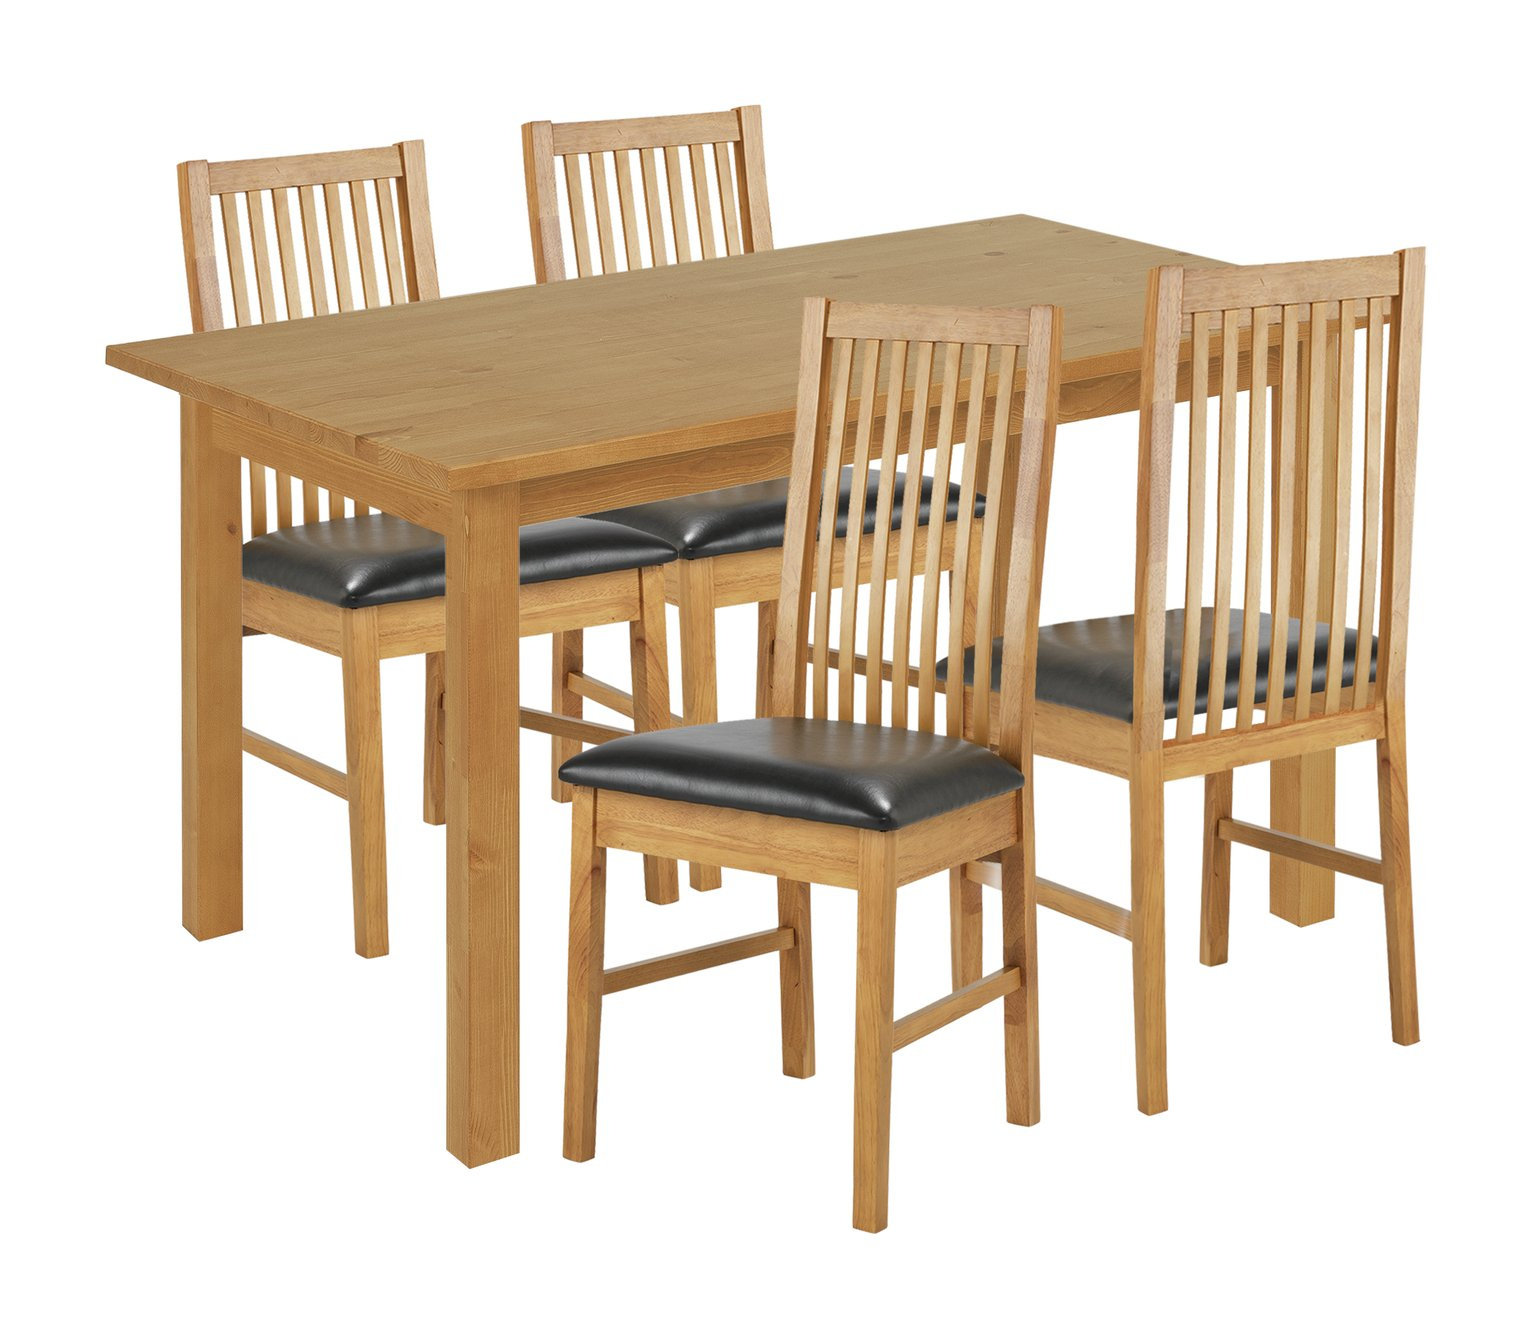 Image of HOME Ashdon Solid Wood Dining Table & 4 Chairs - Grey